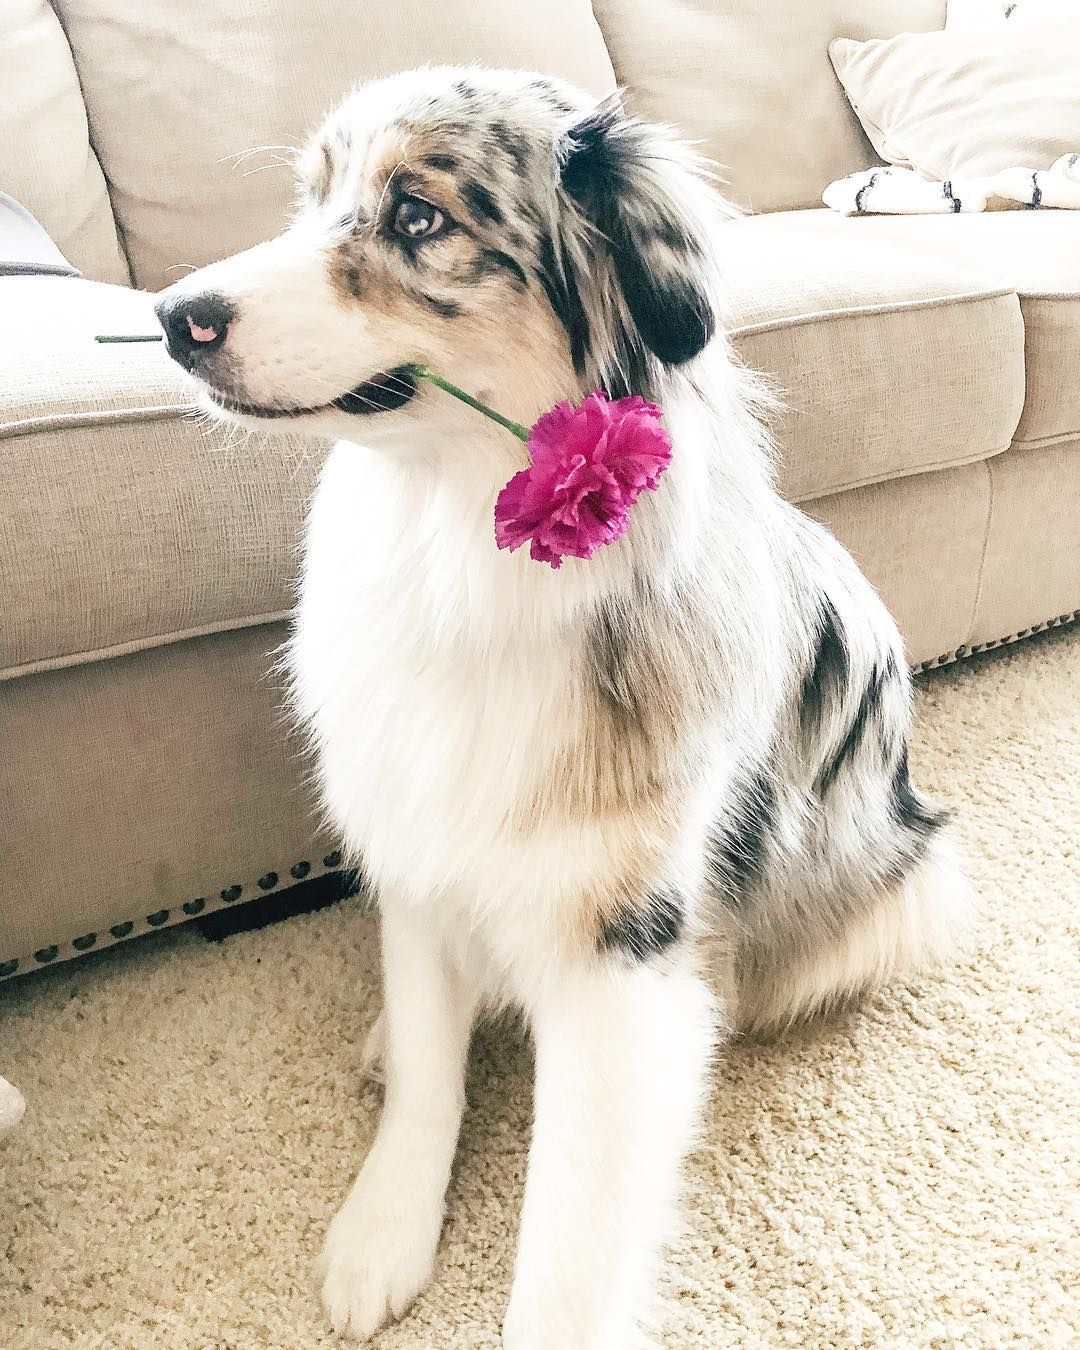 Blue Merle Australian Shepherd Aussie Puppy With Flower Aussie Puppies Merle Australian Shepherd Aussie Dogs